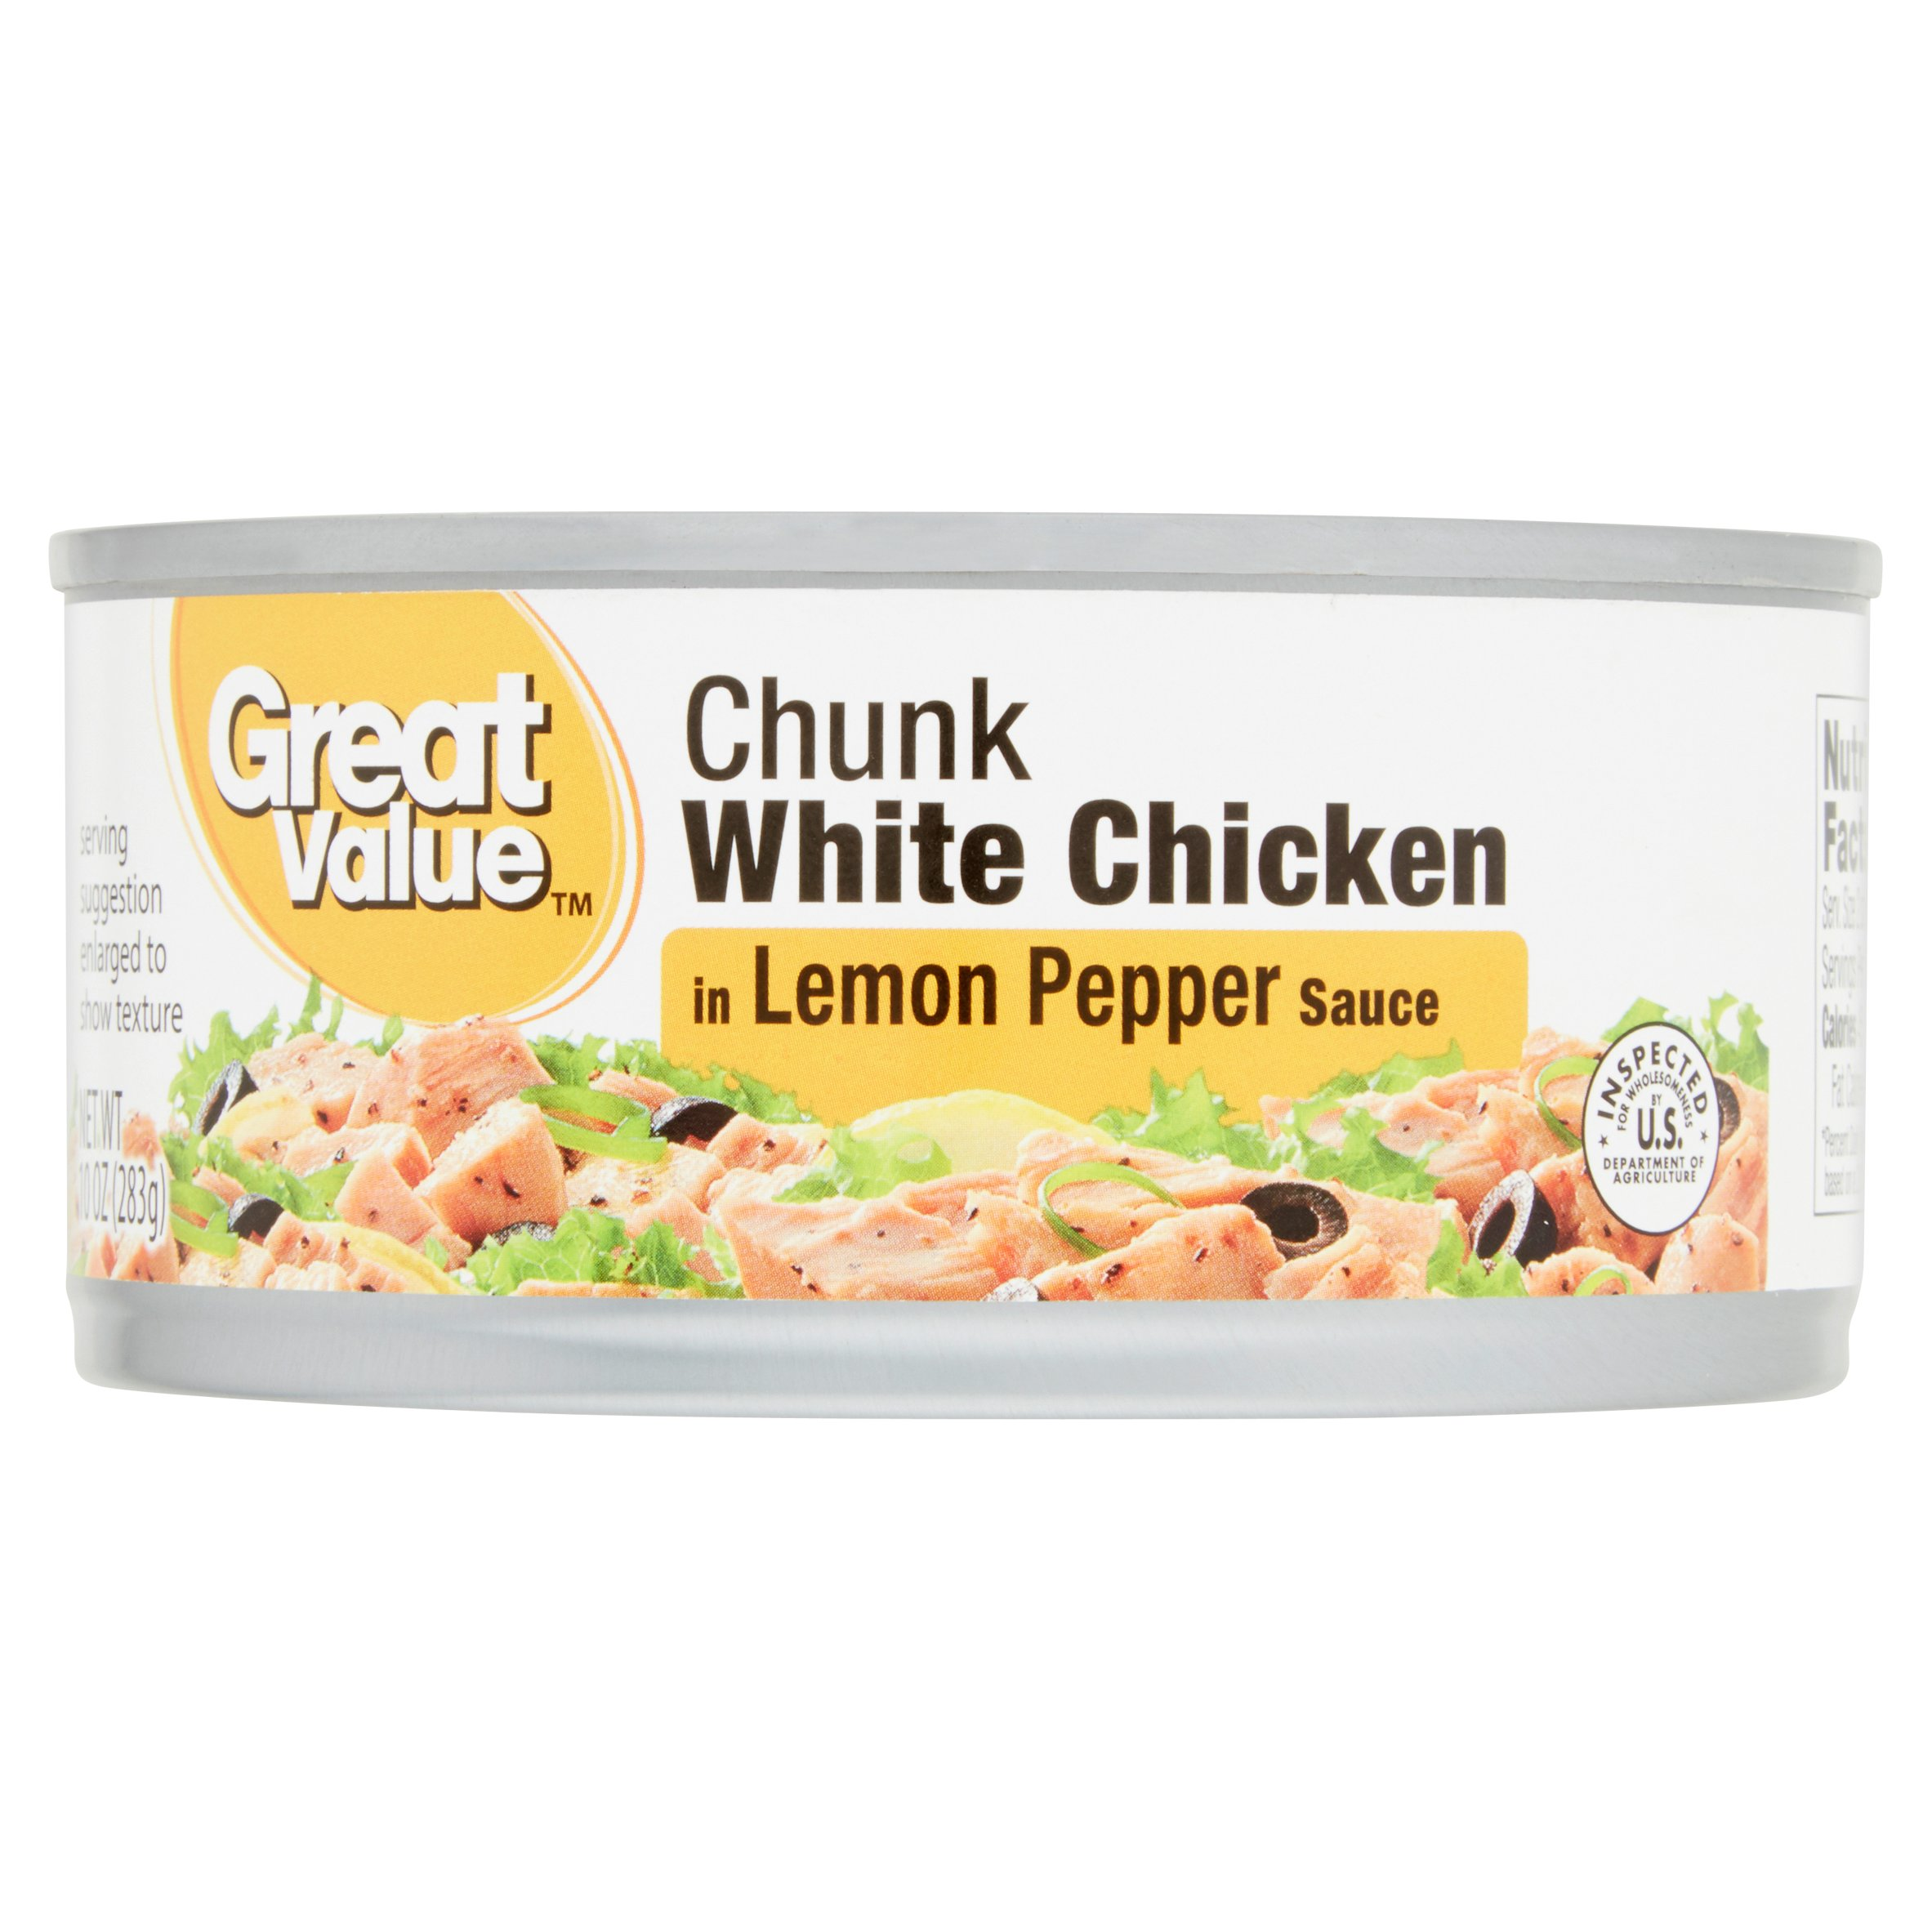 Great Value Chunk White Chicken in Lemon Pepper Sauce, 10 oz by Wal-Mart Stores, Inc.